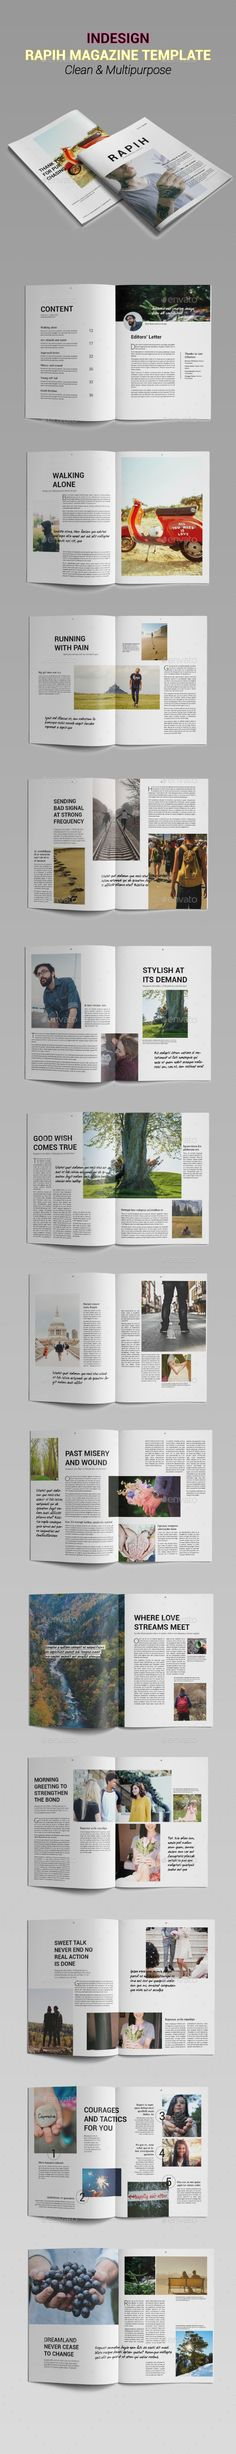 R a p i h Magazine Template InDesign INDD. Download here: http://graphicriver.net/item/r-a-p-i-h-magazine-template/16042767?ref=ksioks